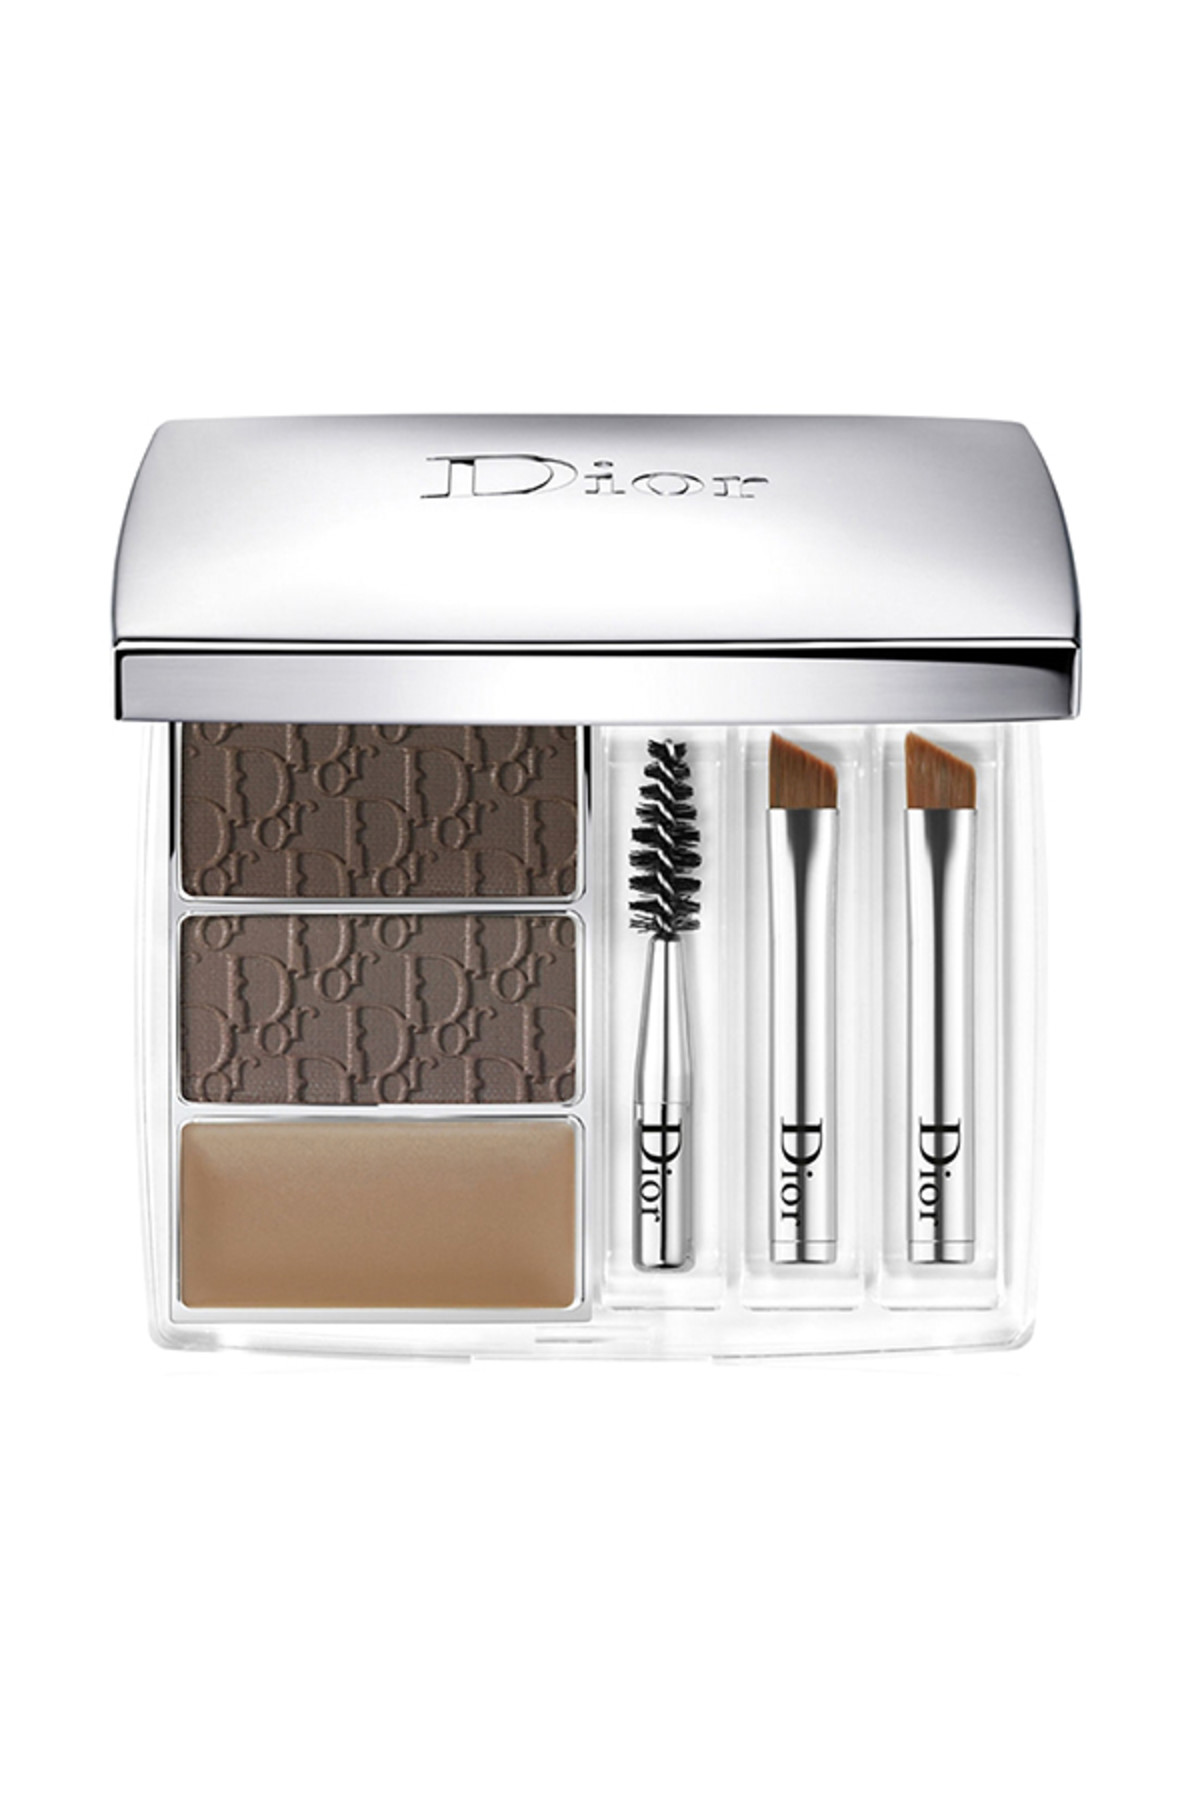 Dior Kahverengi Kontür Kiti - All-in Brow 3d Backstage Pros Long Wear Brow Contour Kit 001 3348901285698 1